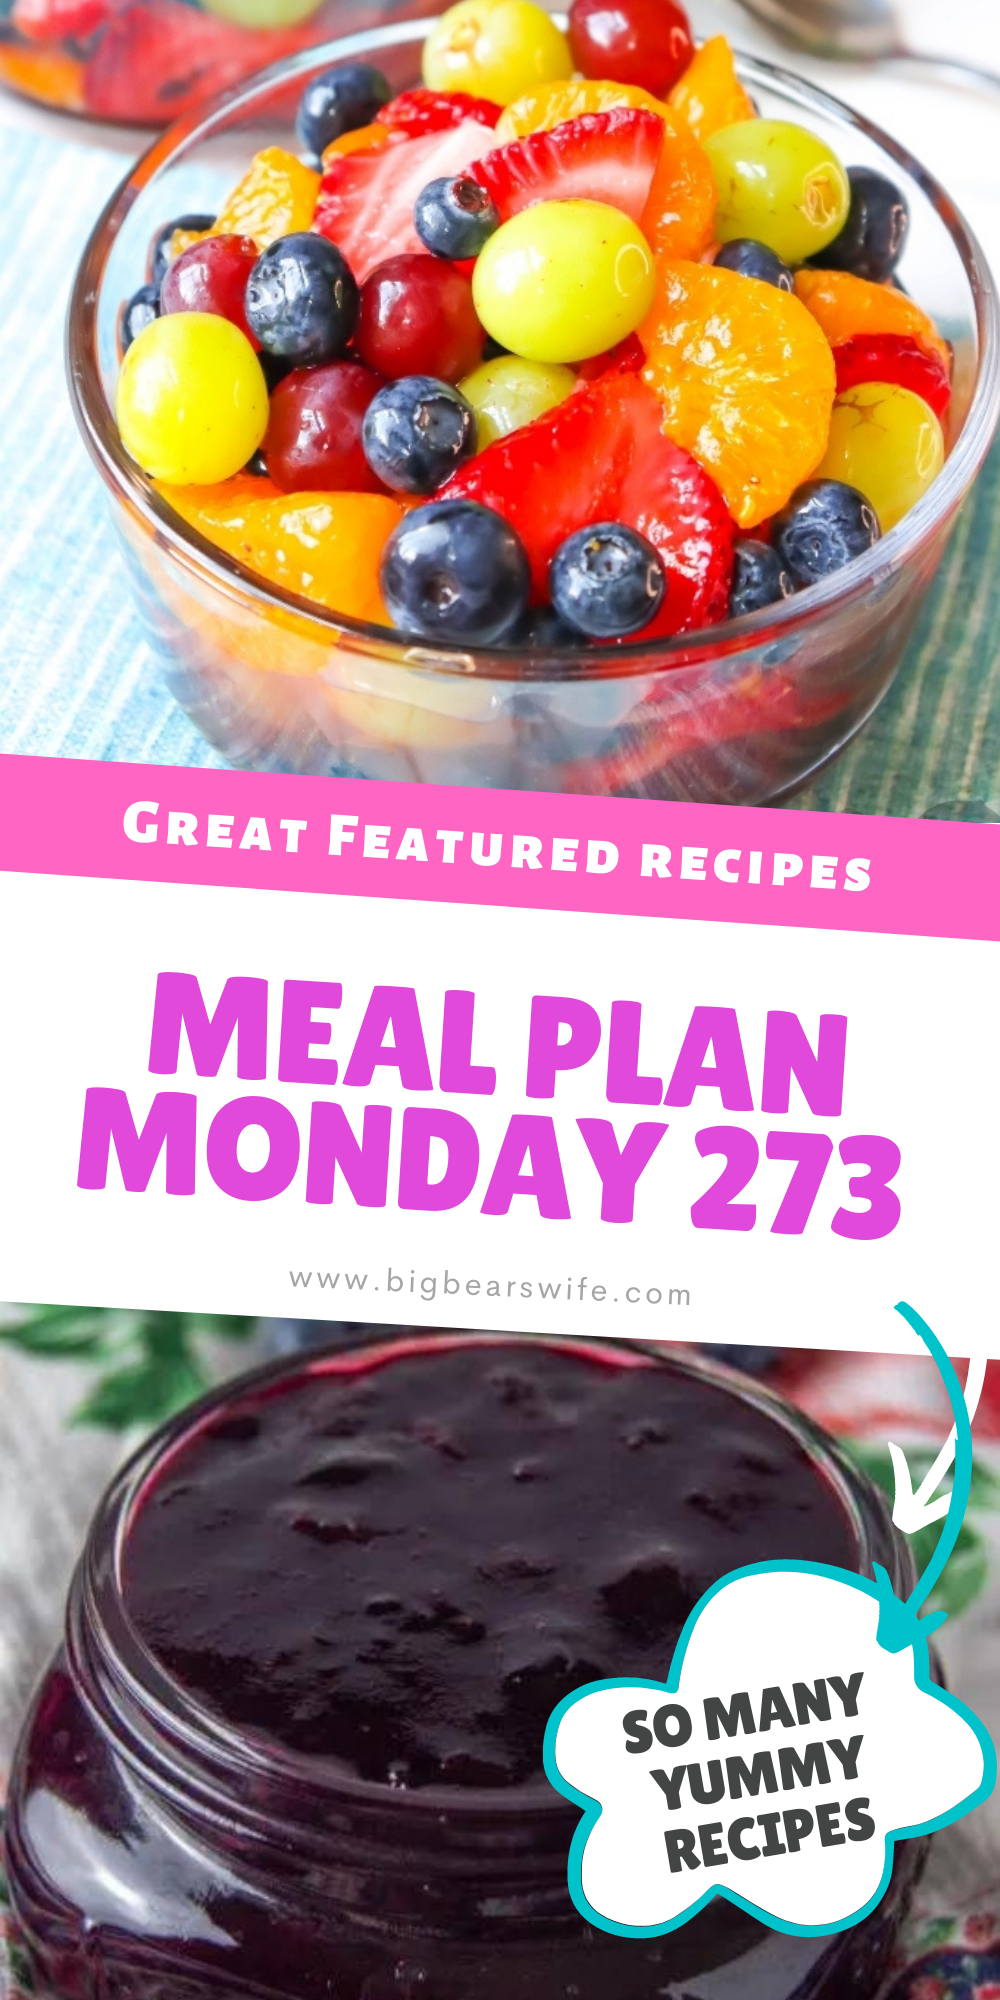 Welcome to this week's Meal Plan Monday! We're featuring some amazing recipes from last week's Meal Plan Monday, like Blueberry Jam Recipe Without Pectin from Momma Lew, Banana Bread French Toast from The Happy Mustard Seed, How to Make Grilled Venison (Deer Meat) Burgers from Grits and Gouda, Pasta Salad with Pepperoni from 4 Sons R Us and Lemonade Fruit Salad from BigBearsWife! via @bigbearswife